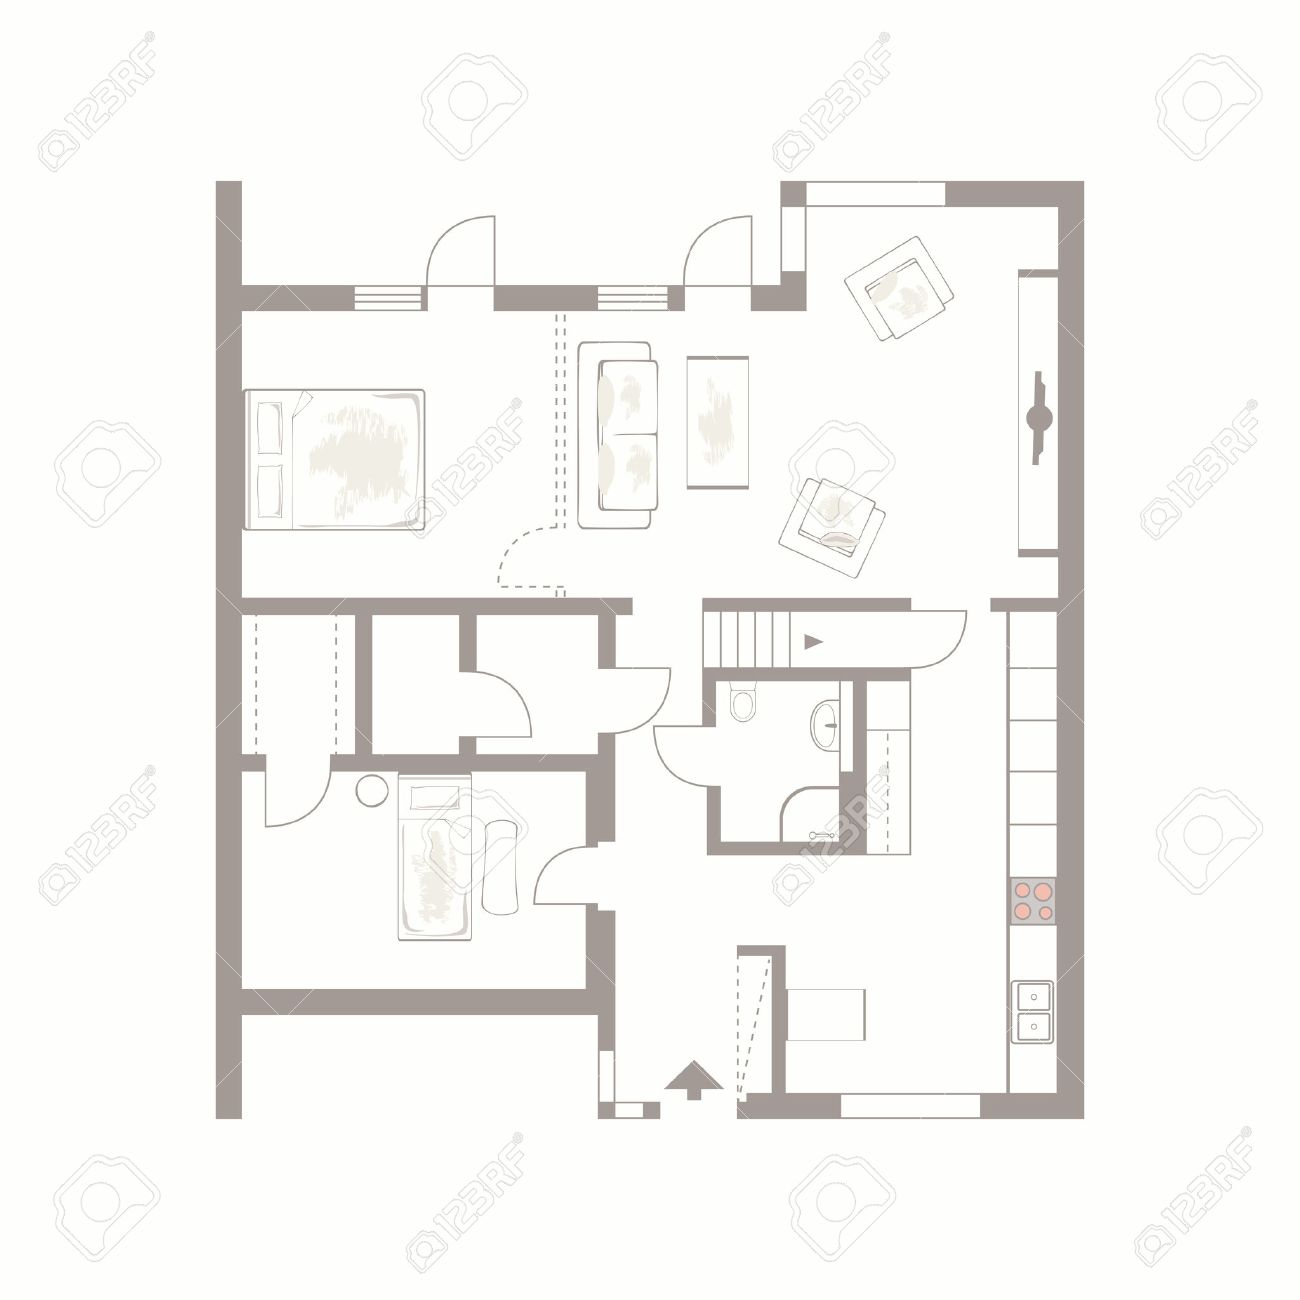 Architectural Background Vector Drawing Of Building Plan With  # Muebles Dibujo Arquitectonico